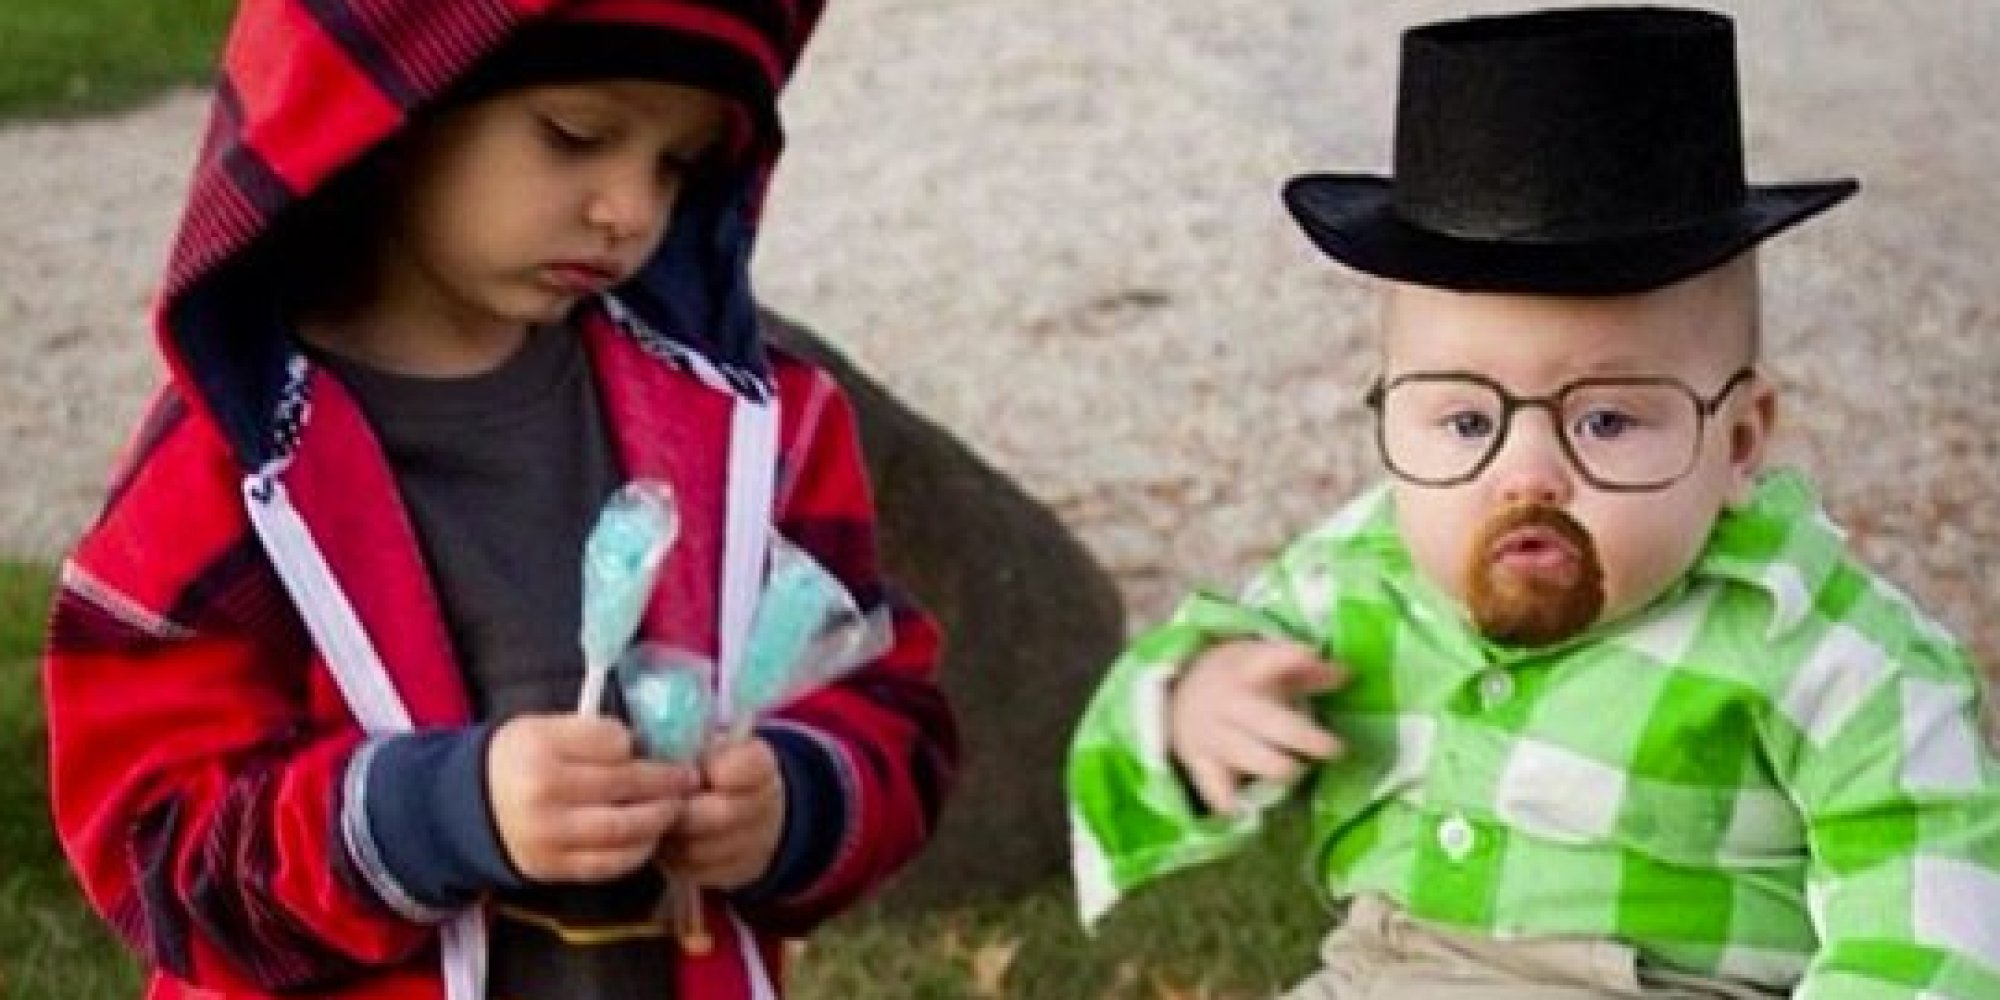 Number 1's : Our Favorite Childhood Halloween Costumes